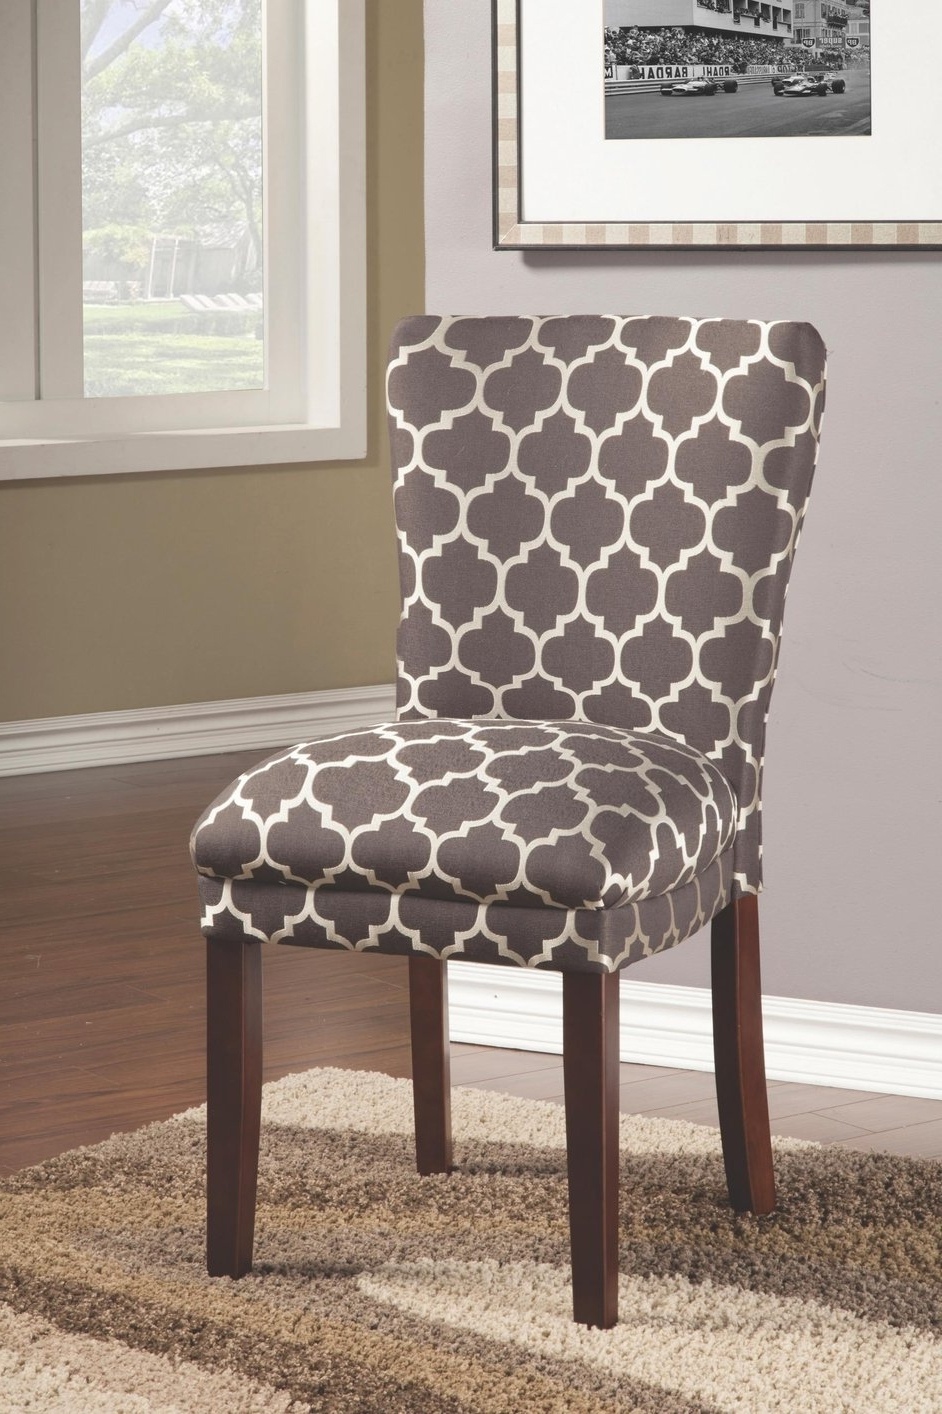 Beige Fabric Dining Chair – Steal A Sofa Furniture Outlet Los Angeles Ca Throughout Newest Fabric Covered Dining Chairs (View 2 of 25)